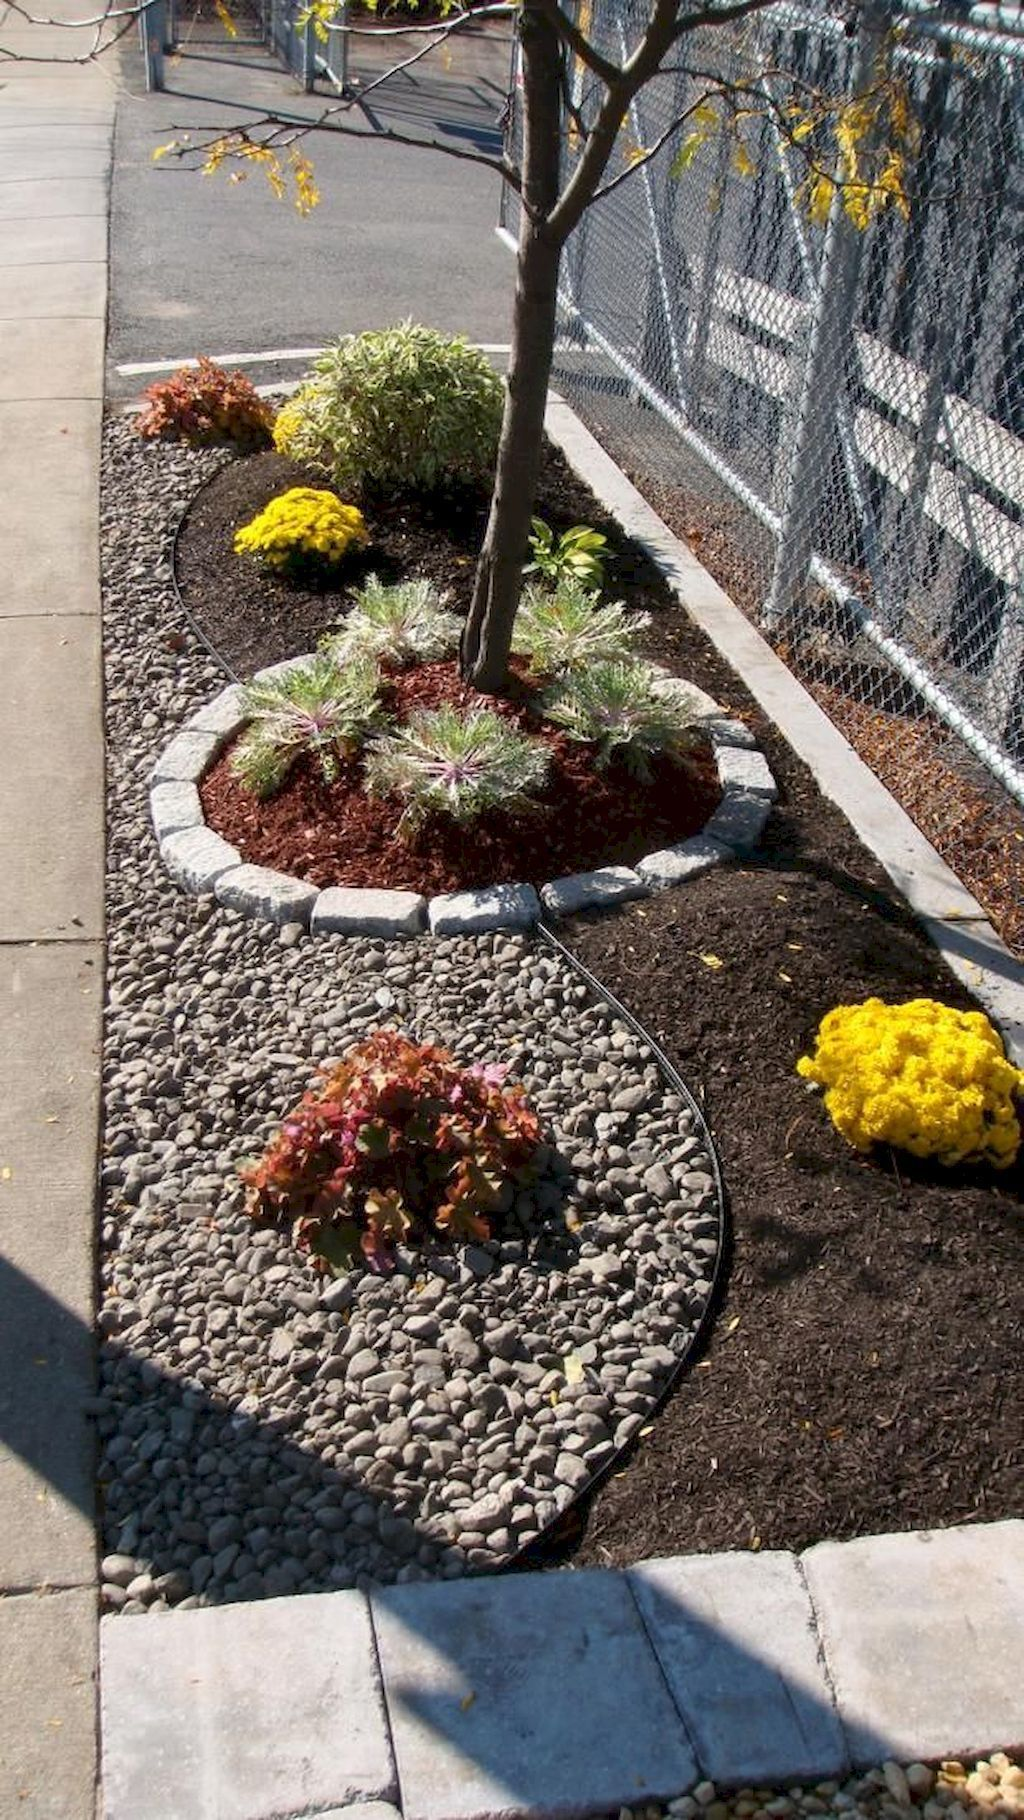 Front yard driveway landscaping ideas  Small Front Yard Landscaping Ideas on A Budget